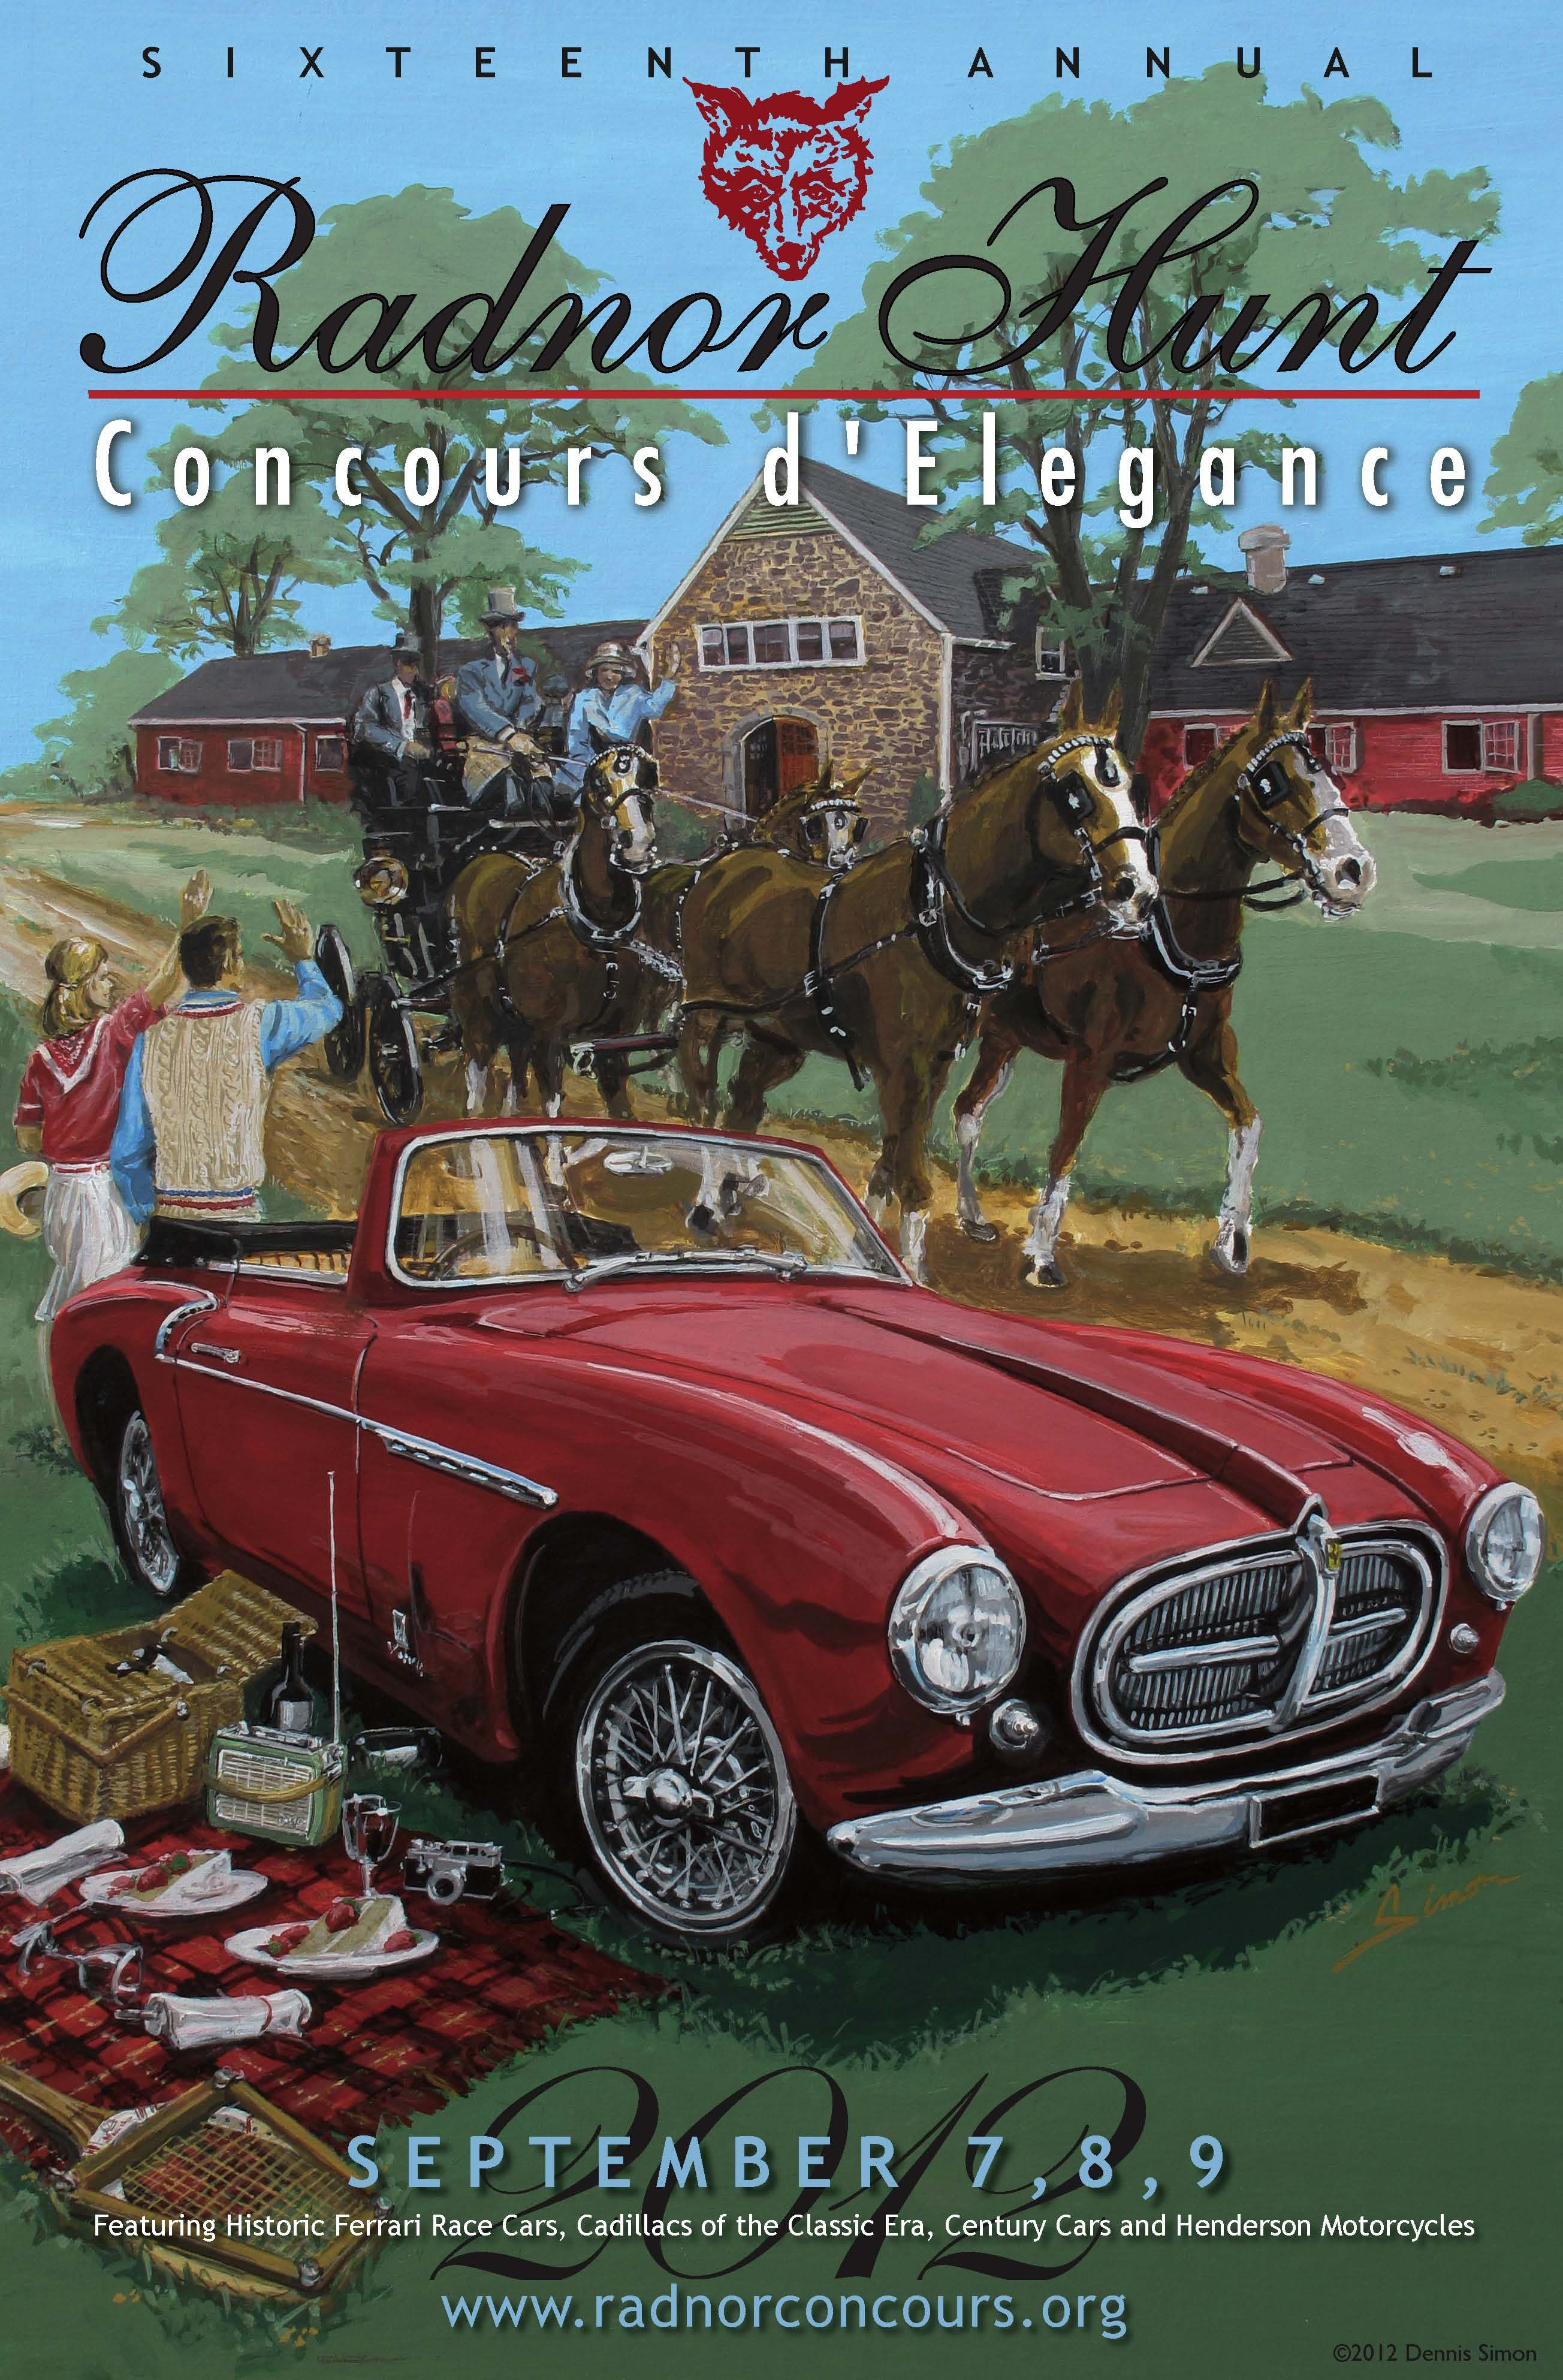 Radnor Concours Vintage Style Car Show Poster, Ferrari 212, Vignale, by © Dennis Simon. This poster is available at centuryofspeed.com